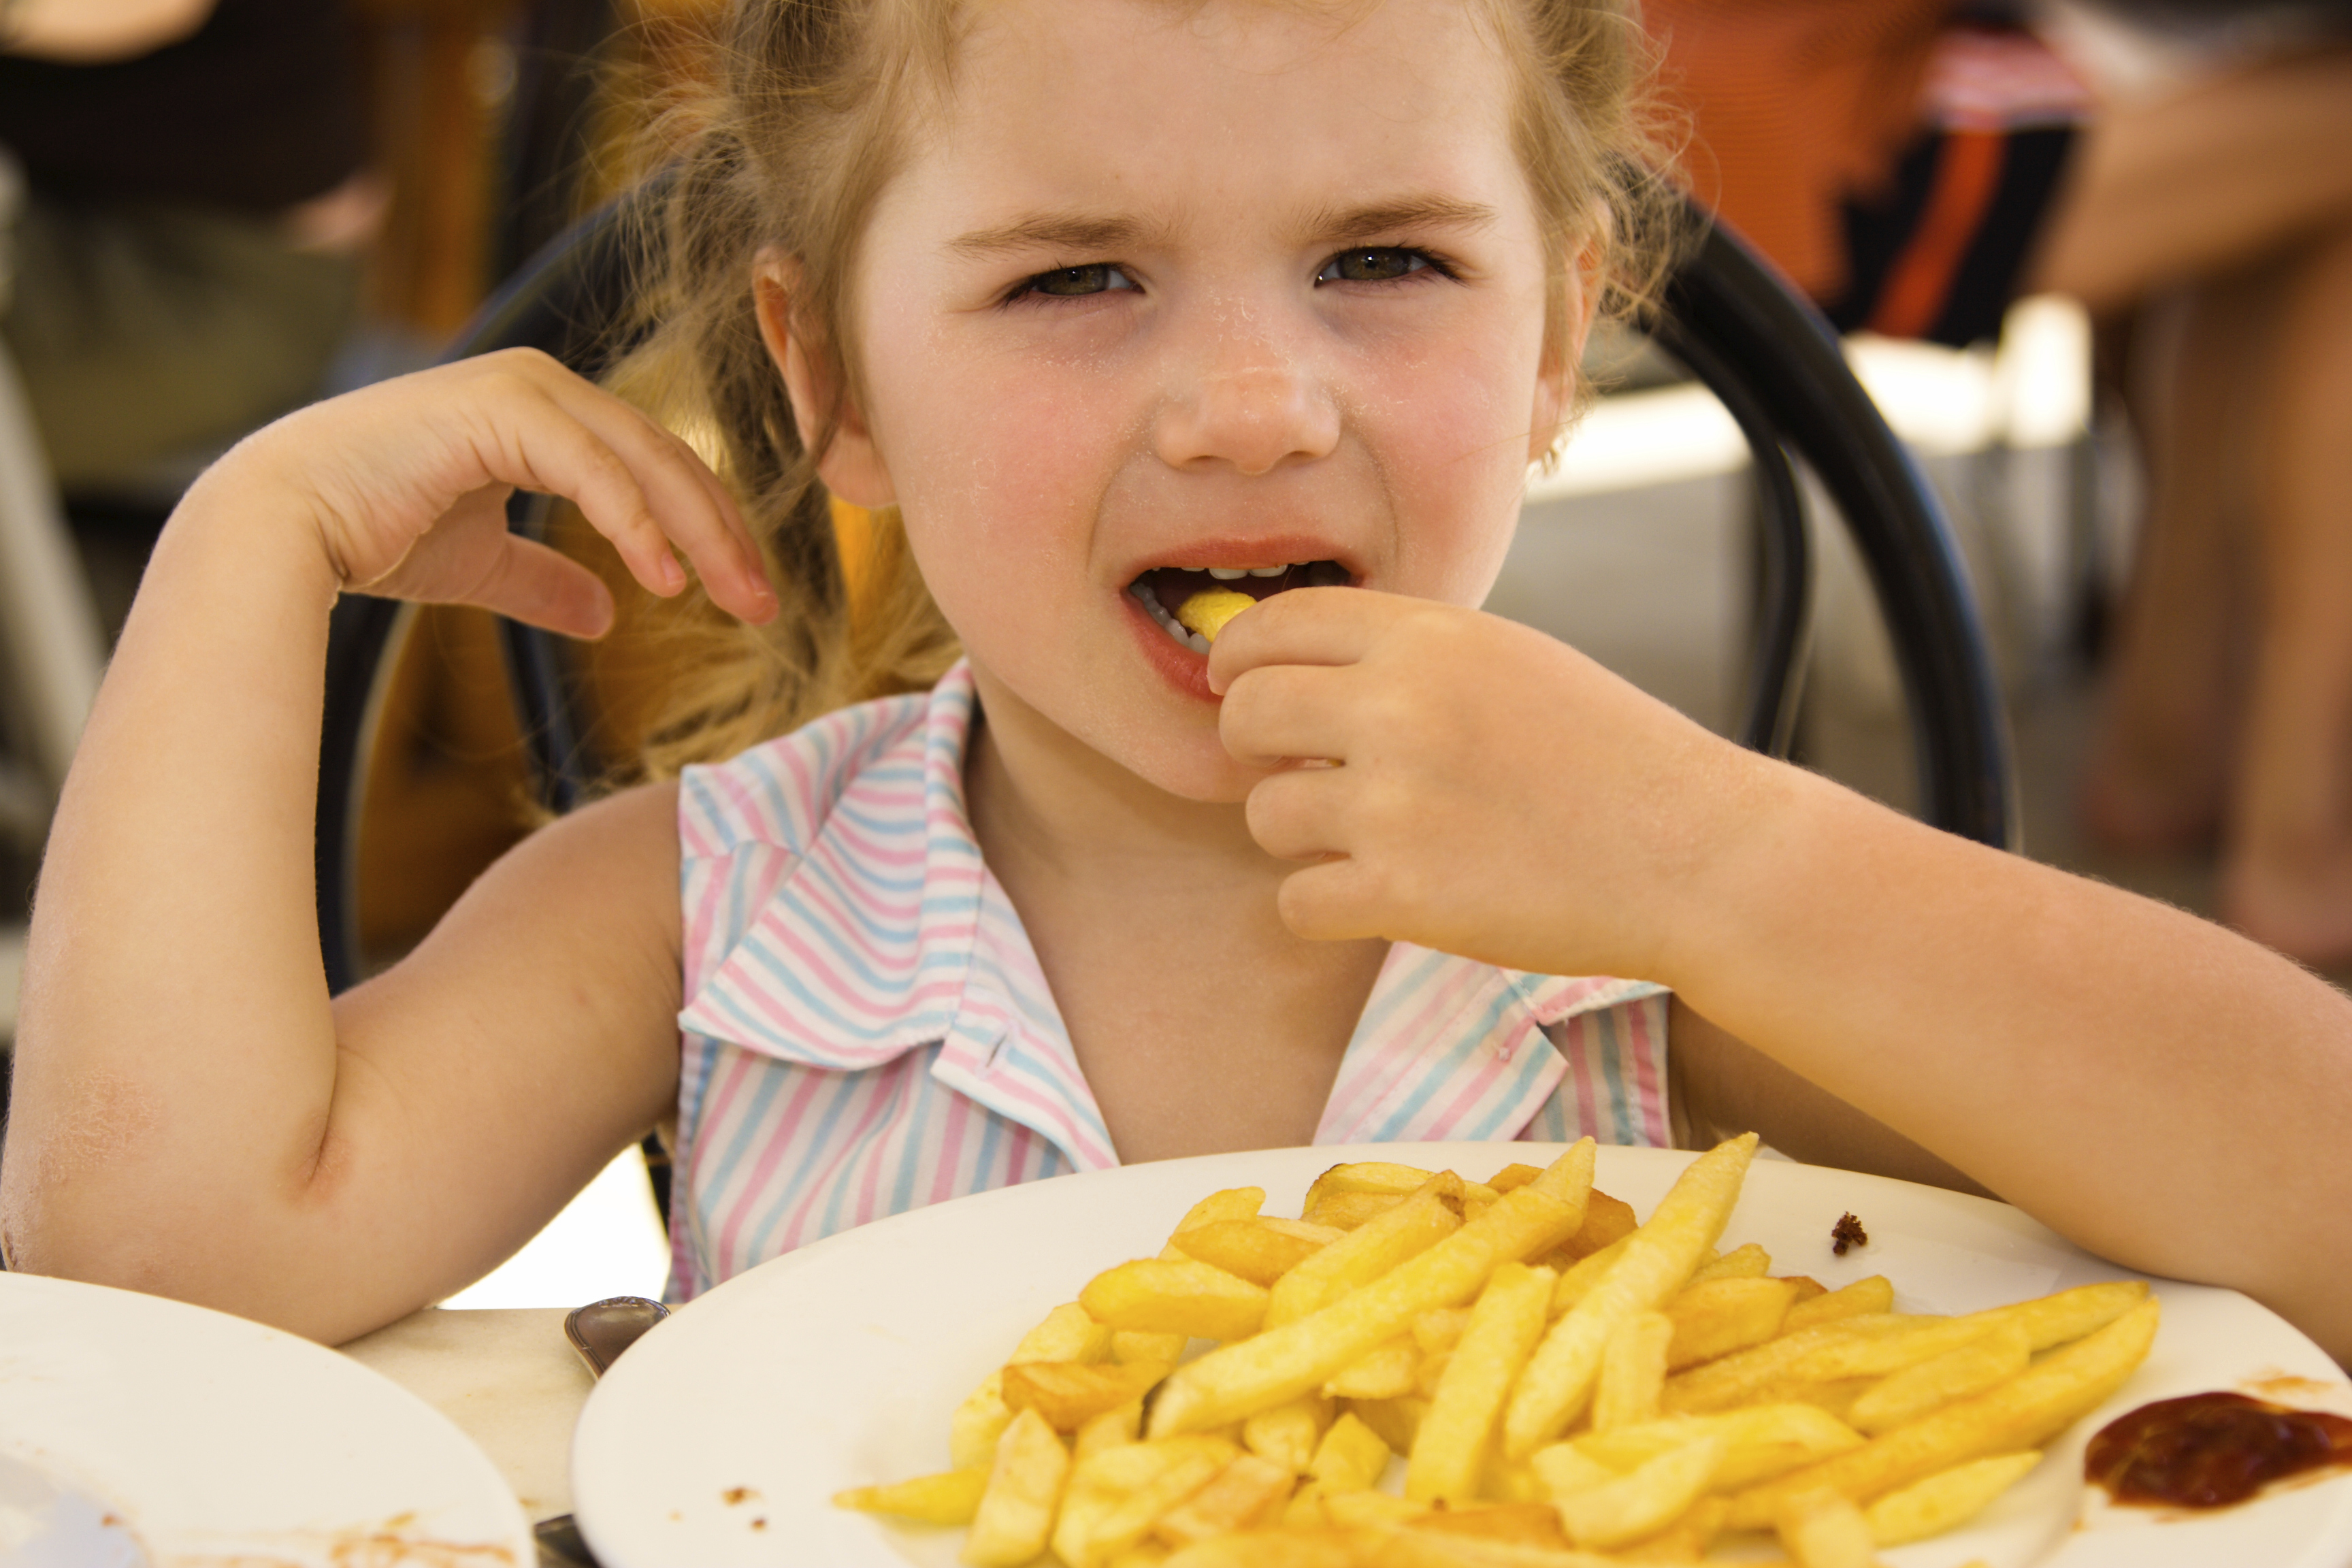 Top 10 Most Unhealthy Snacks for Kids | Healthfully